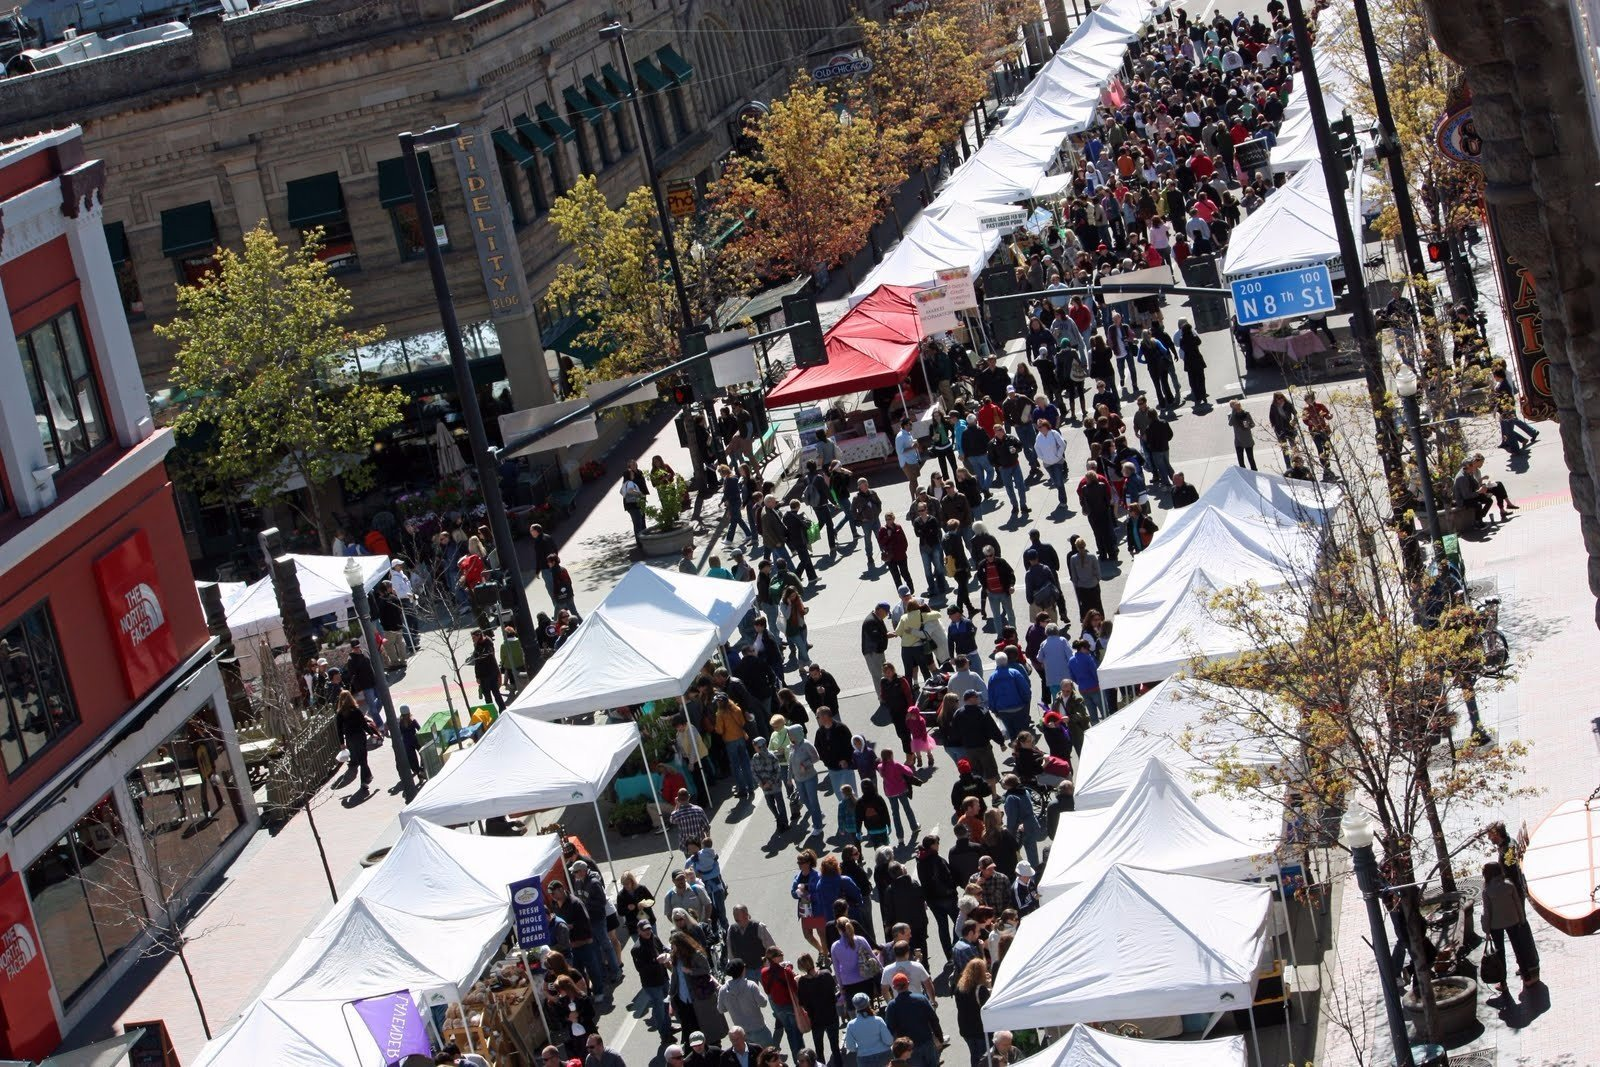 Boise's outdoor Saturday market